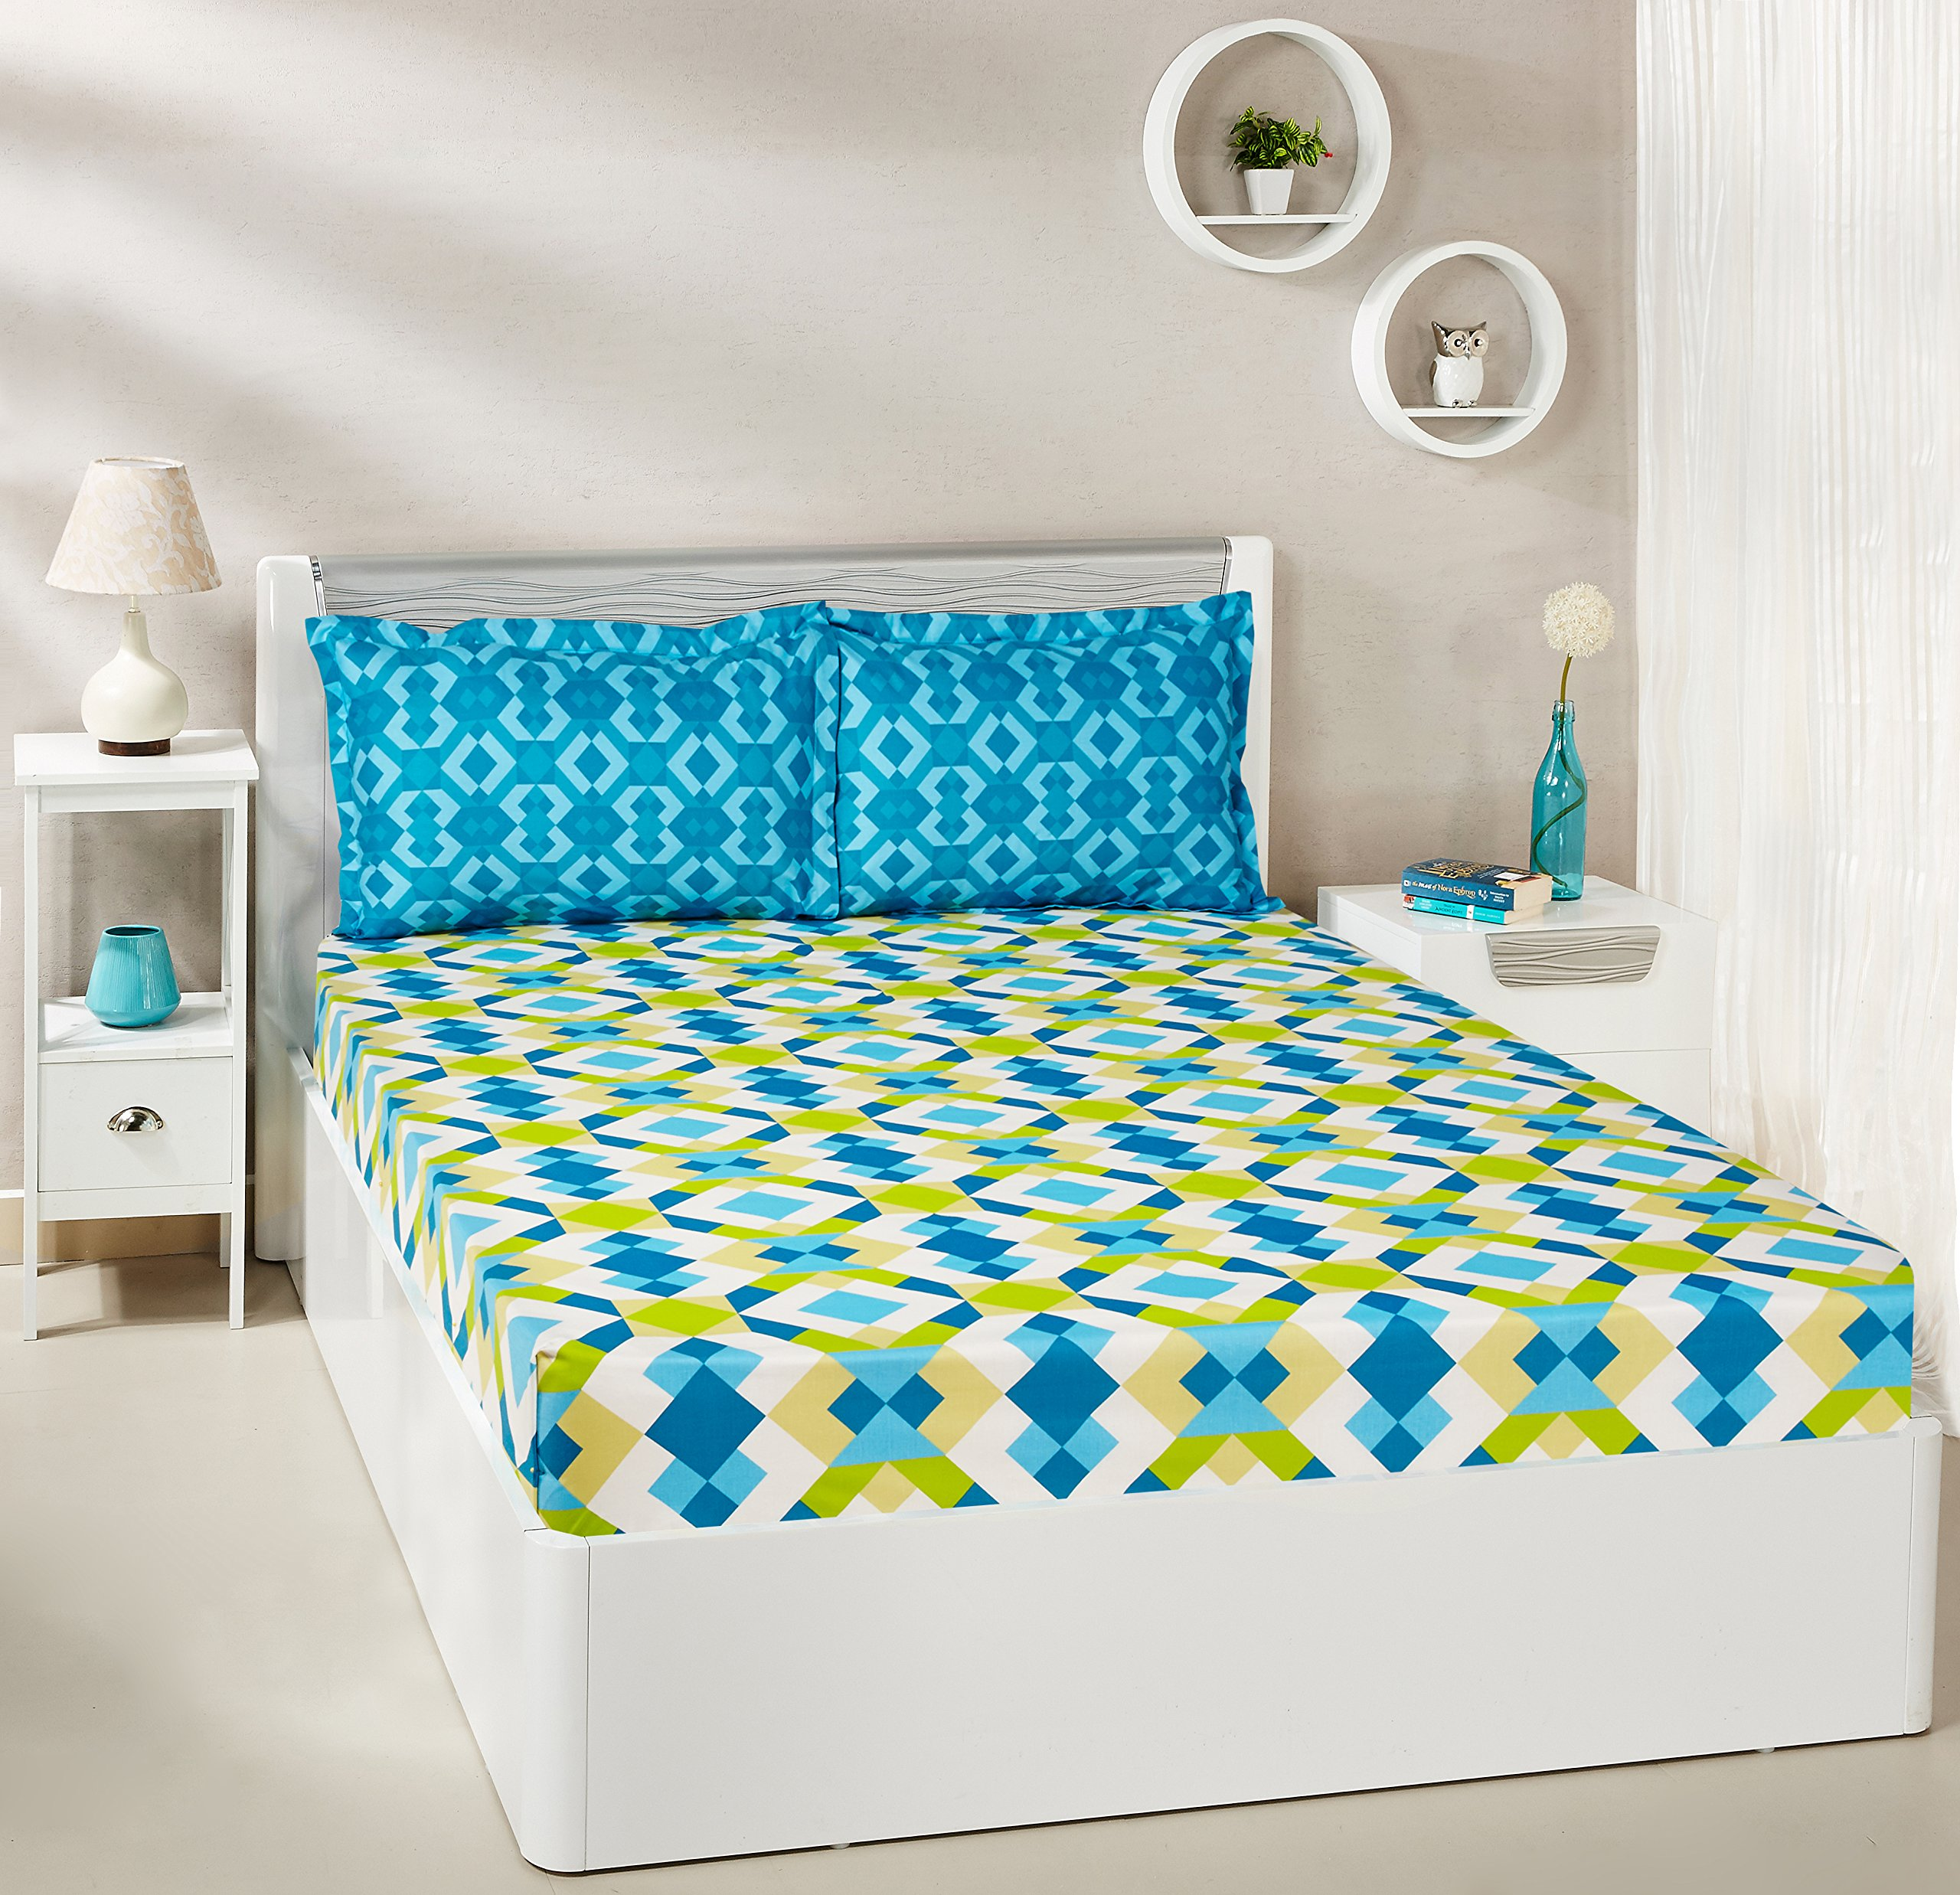 Amazon Brand - Solimo Kaleidoscope Dreams 144 TC 100% Cotton Double Bedsheet with 2 Pillow Covers, Green and Blue product image